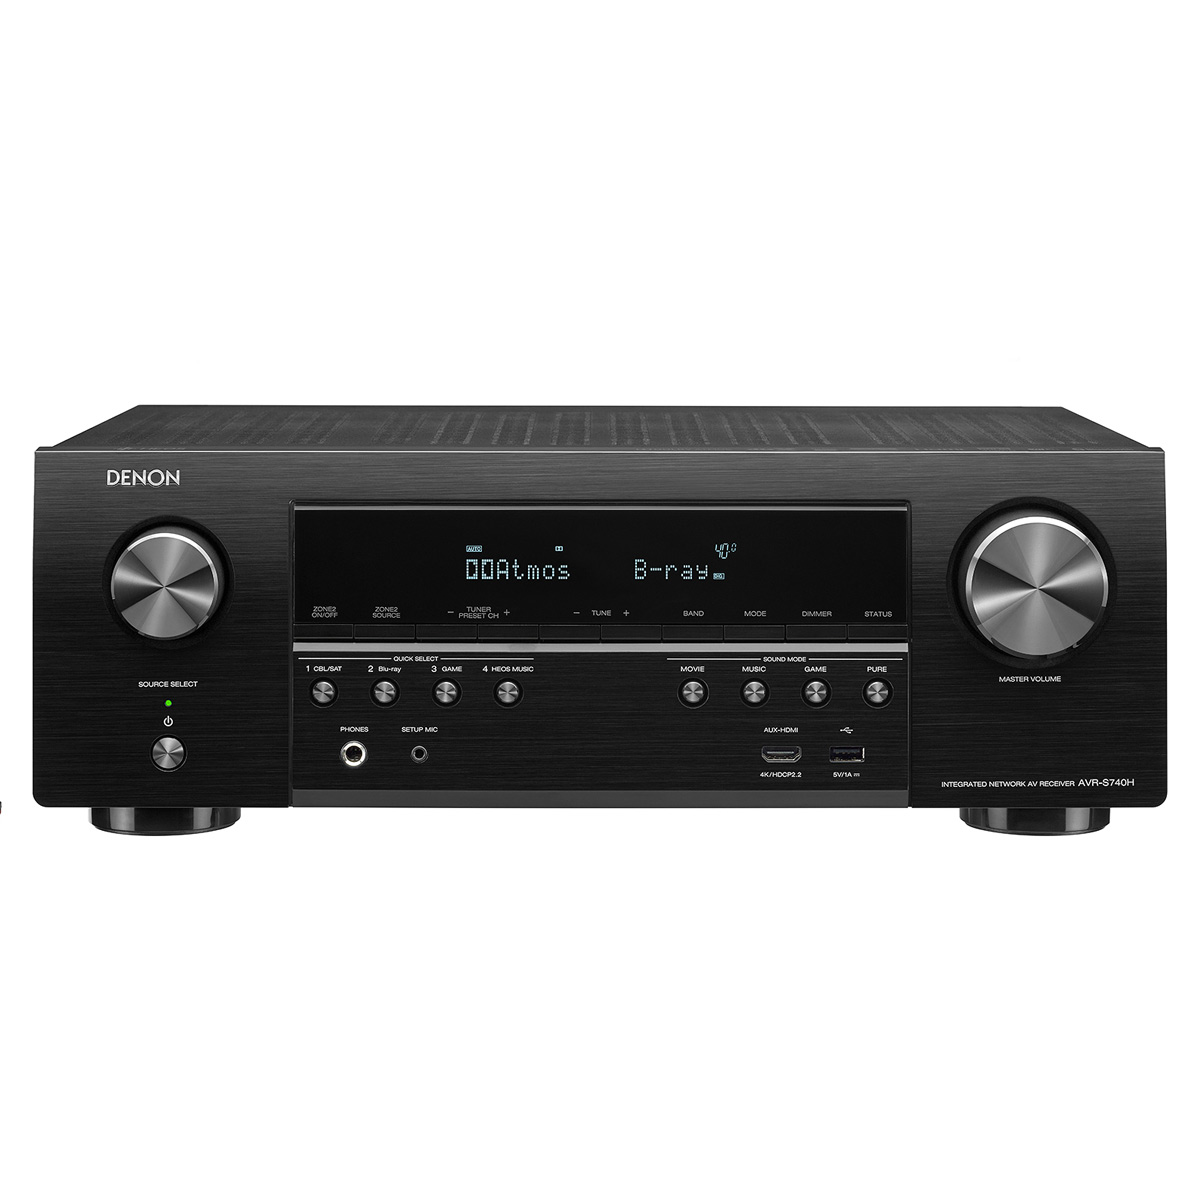 DENAVRS740H Denon AV Receivers Audio & Video Component Receiver BLACK (AVRS740H) by Denon